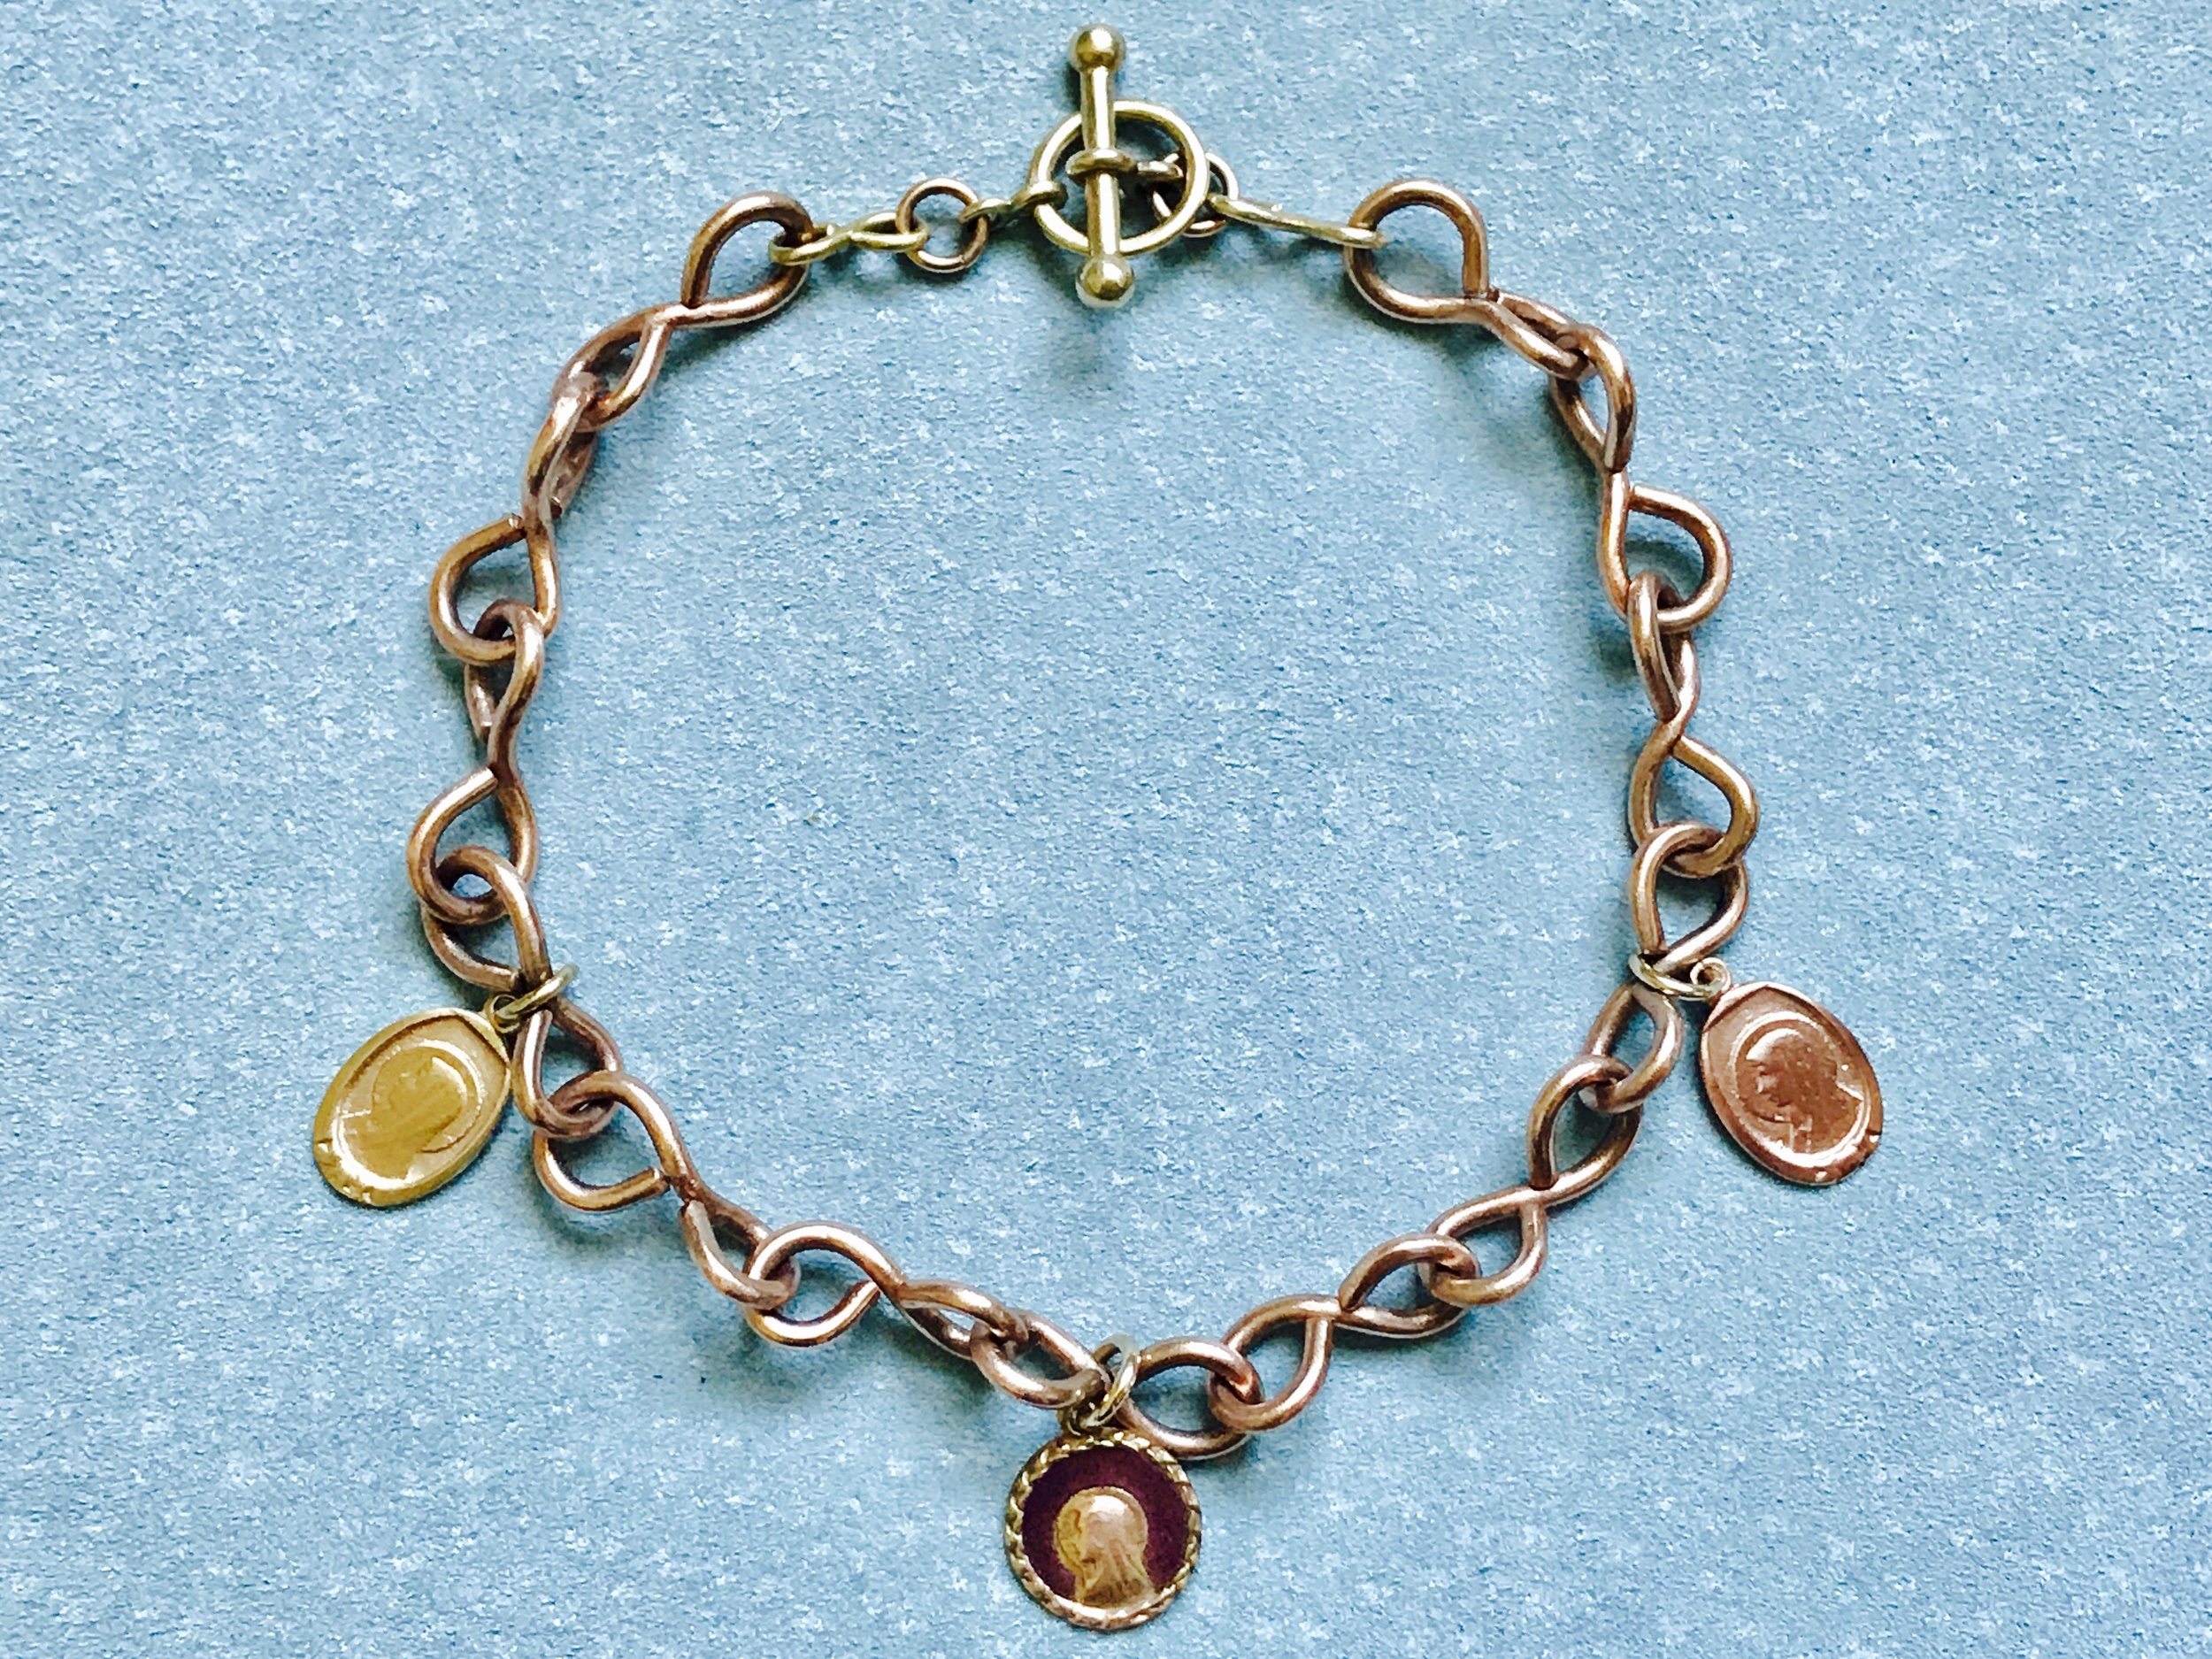 TWISTED INFINITY CHAIN BRACELET WITH MADONNA MEDALLIONS